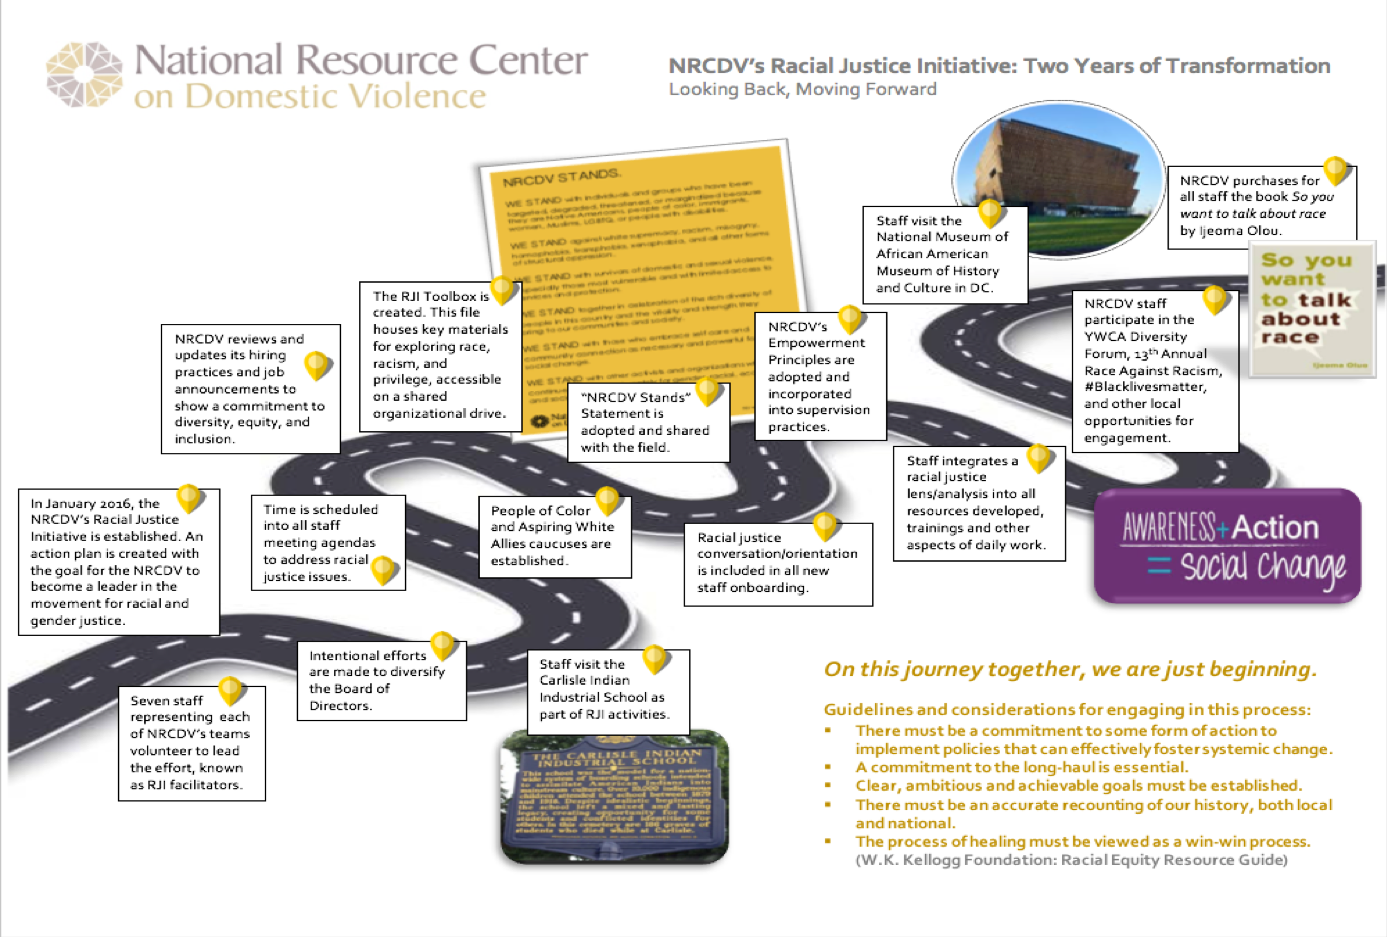 A paved winding road snakes across the page. At multiple places along the road there are text boxes and images marking important events in NRCDV's two year journey in their racial justice initiative.